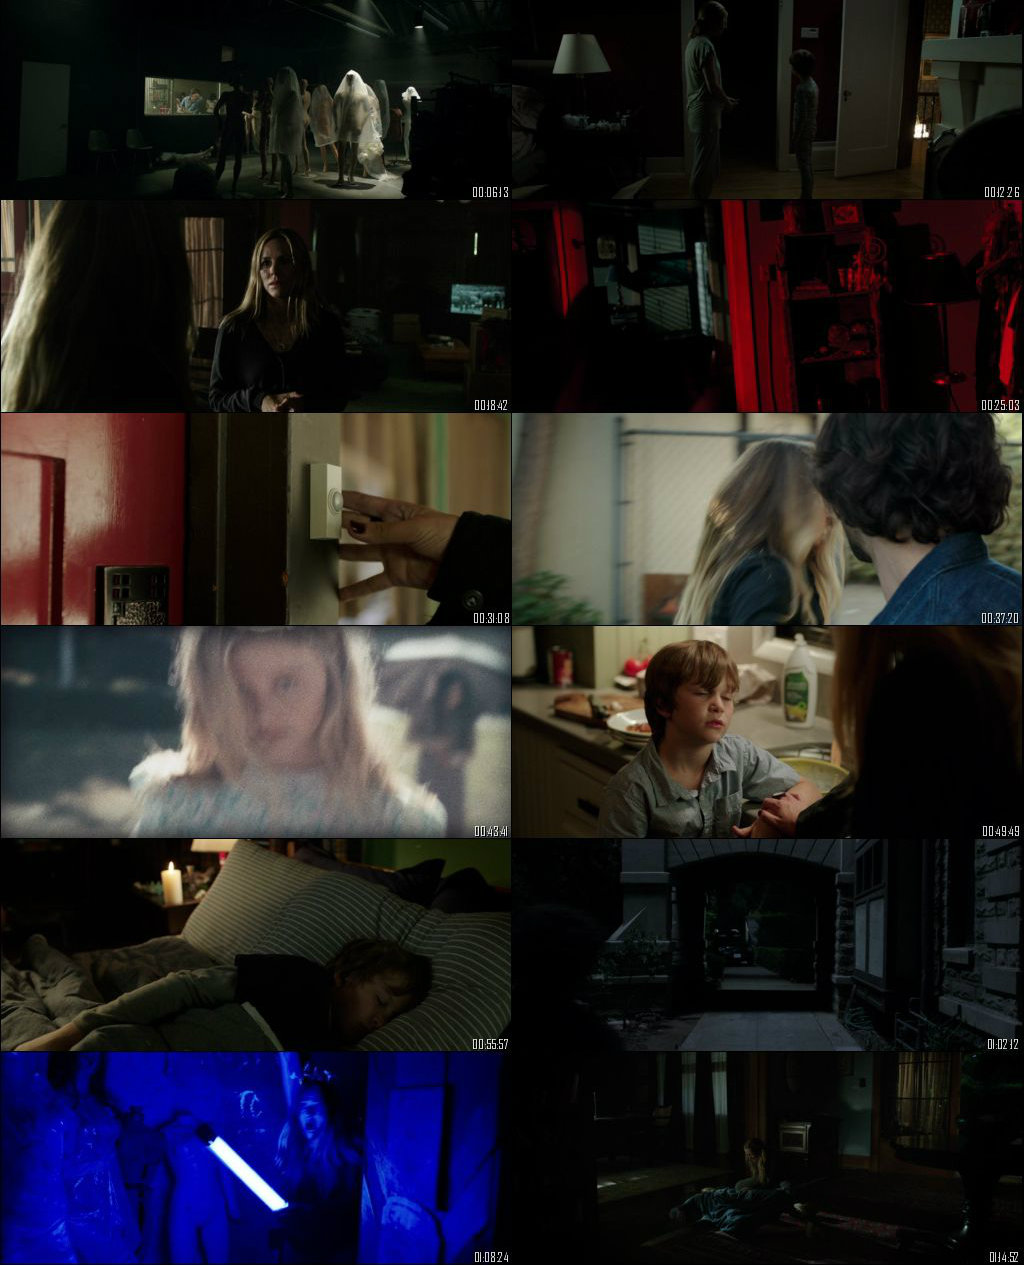 Lights Out 2016 world4free.ind.in Full Hollywood BRRip 480p Dual Audio 300Mb